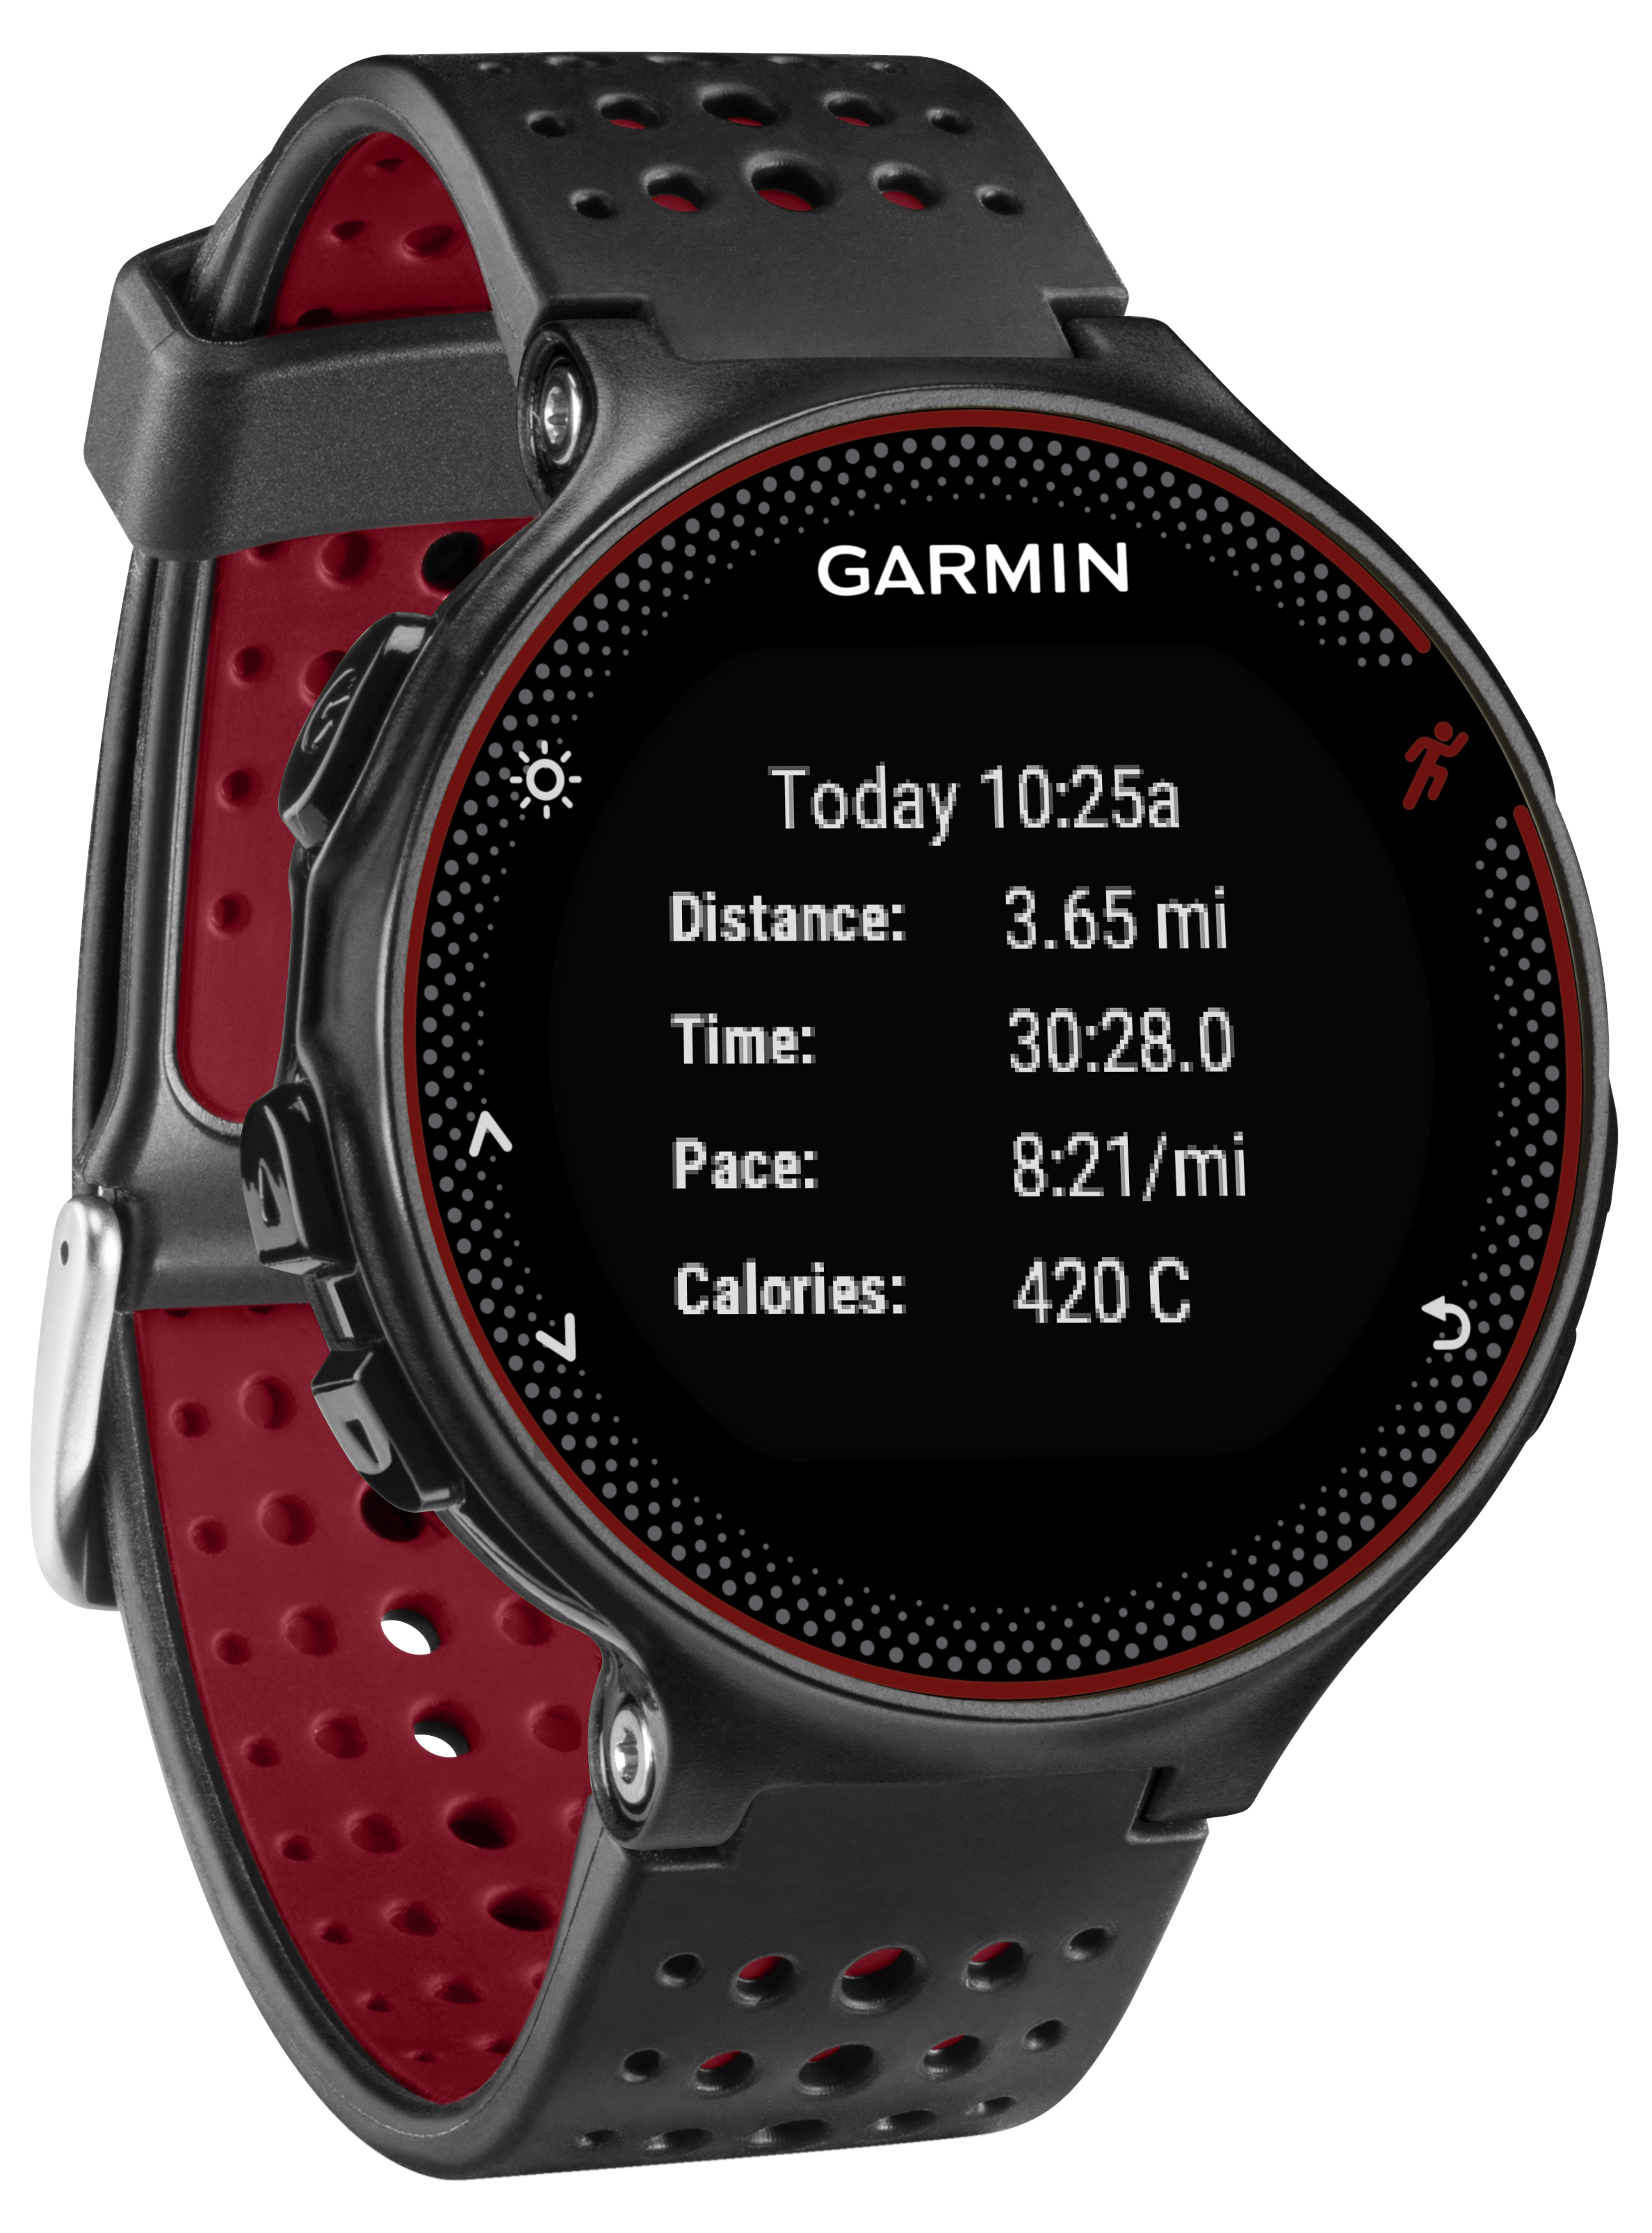 ca category black gps garmin buy en canada large sport forerunner watches running watch best